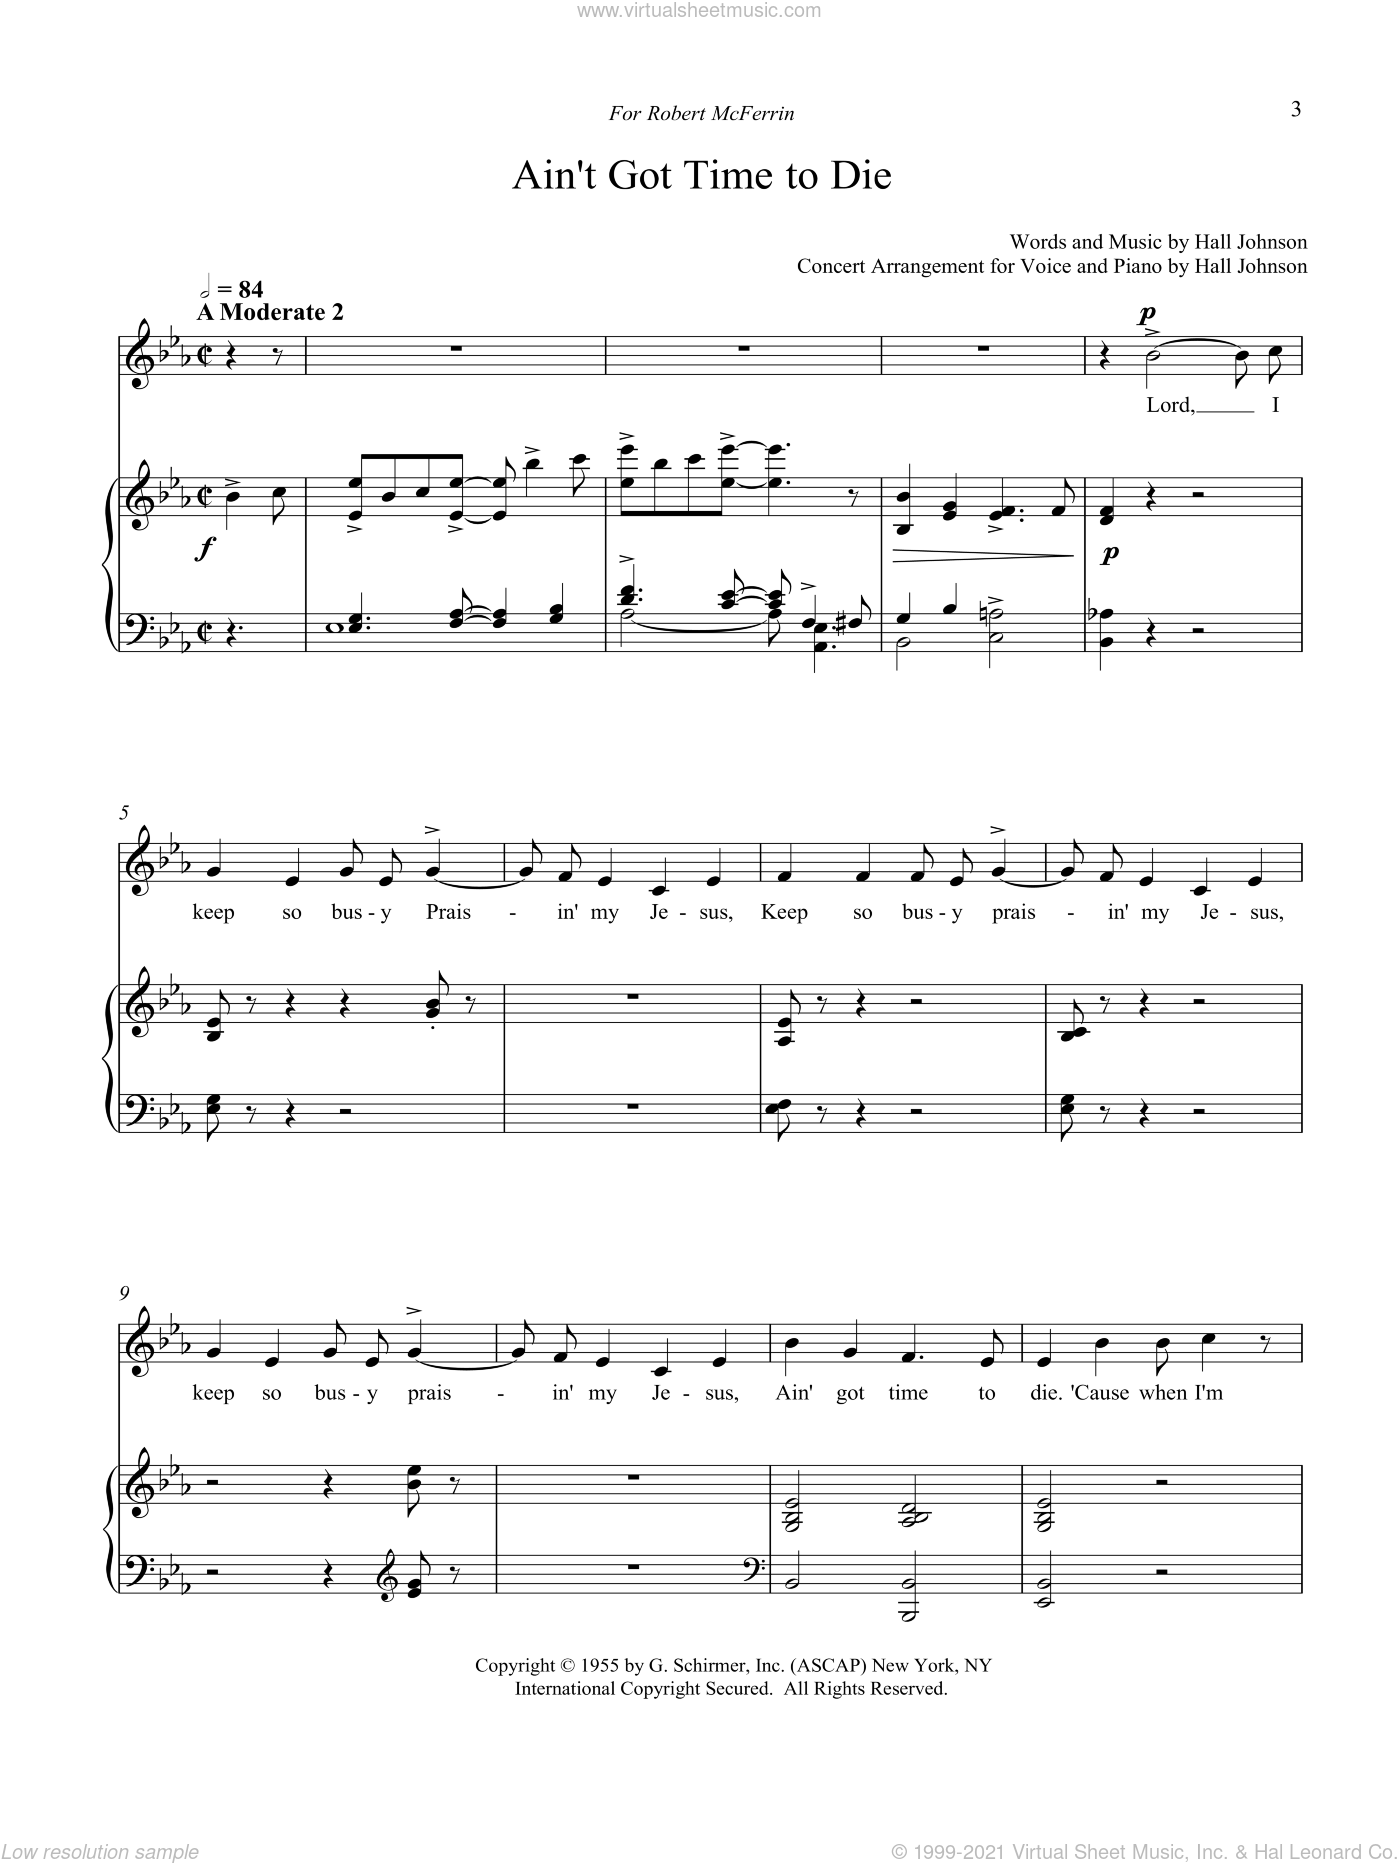 Ain't Got Time to Die (E-flat) sheet music for voice and piano by Hall Johnson, classical score, intermediate skill level